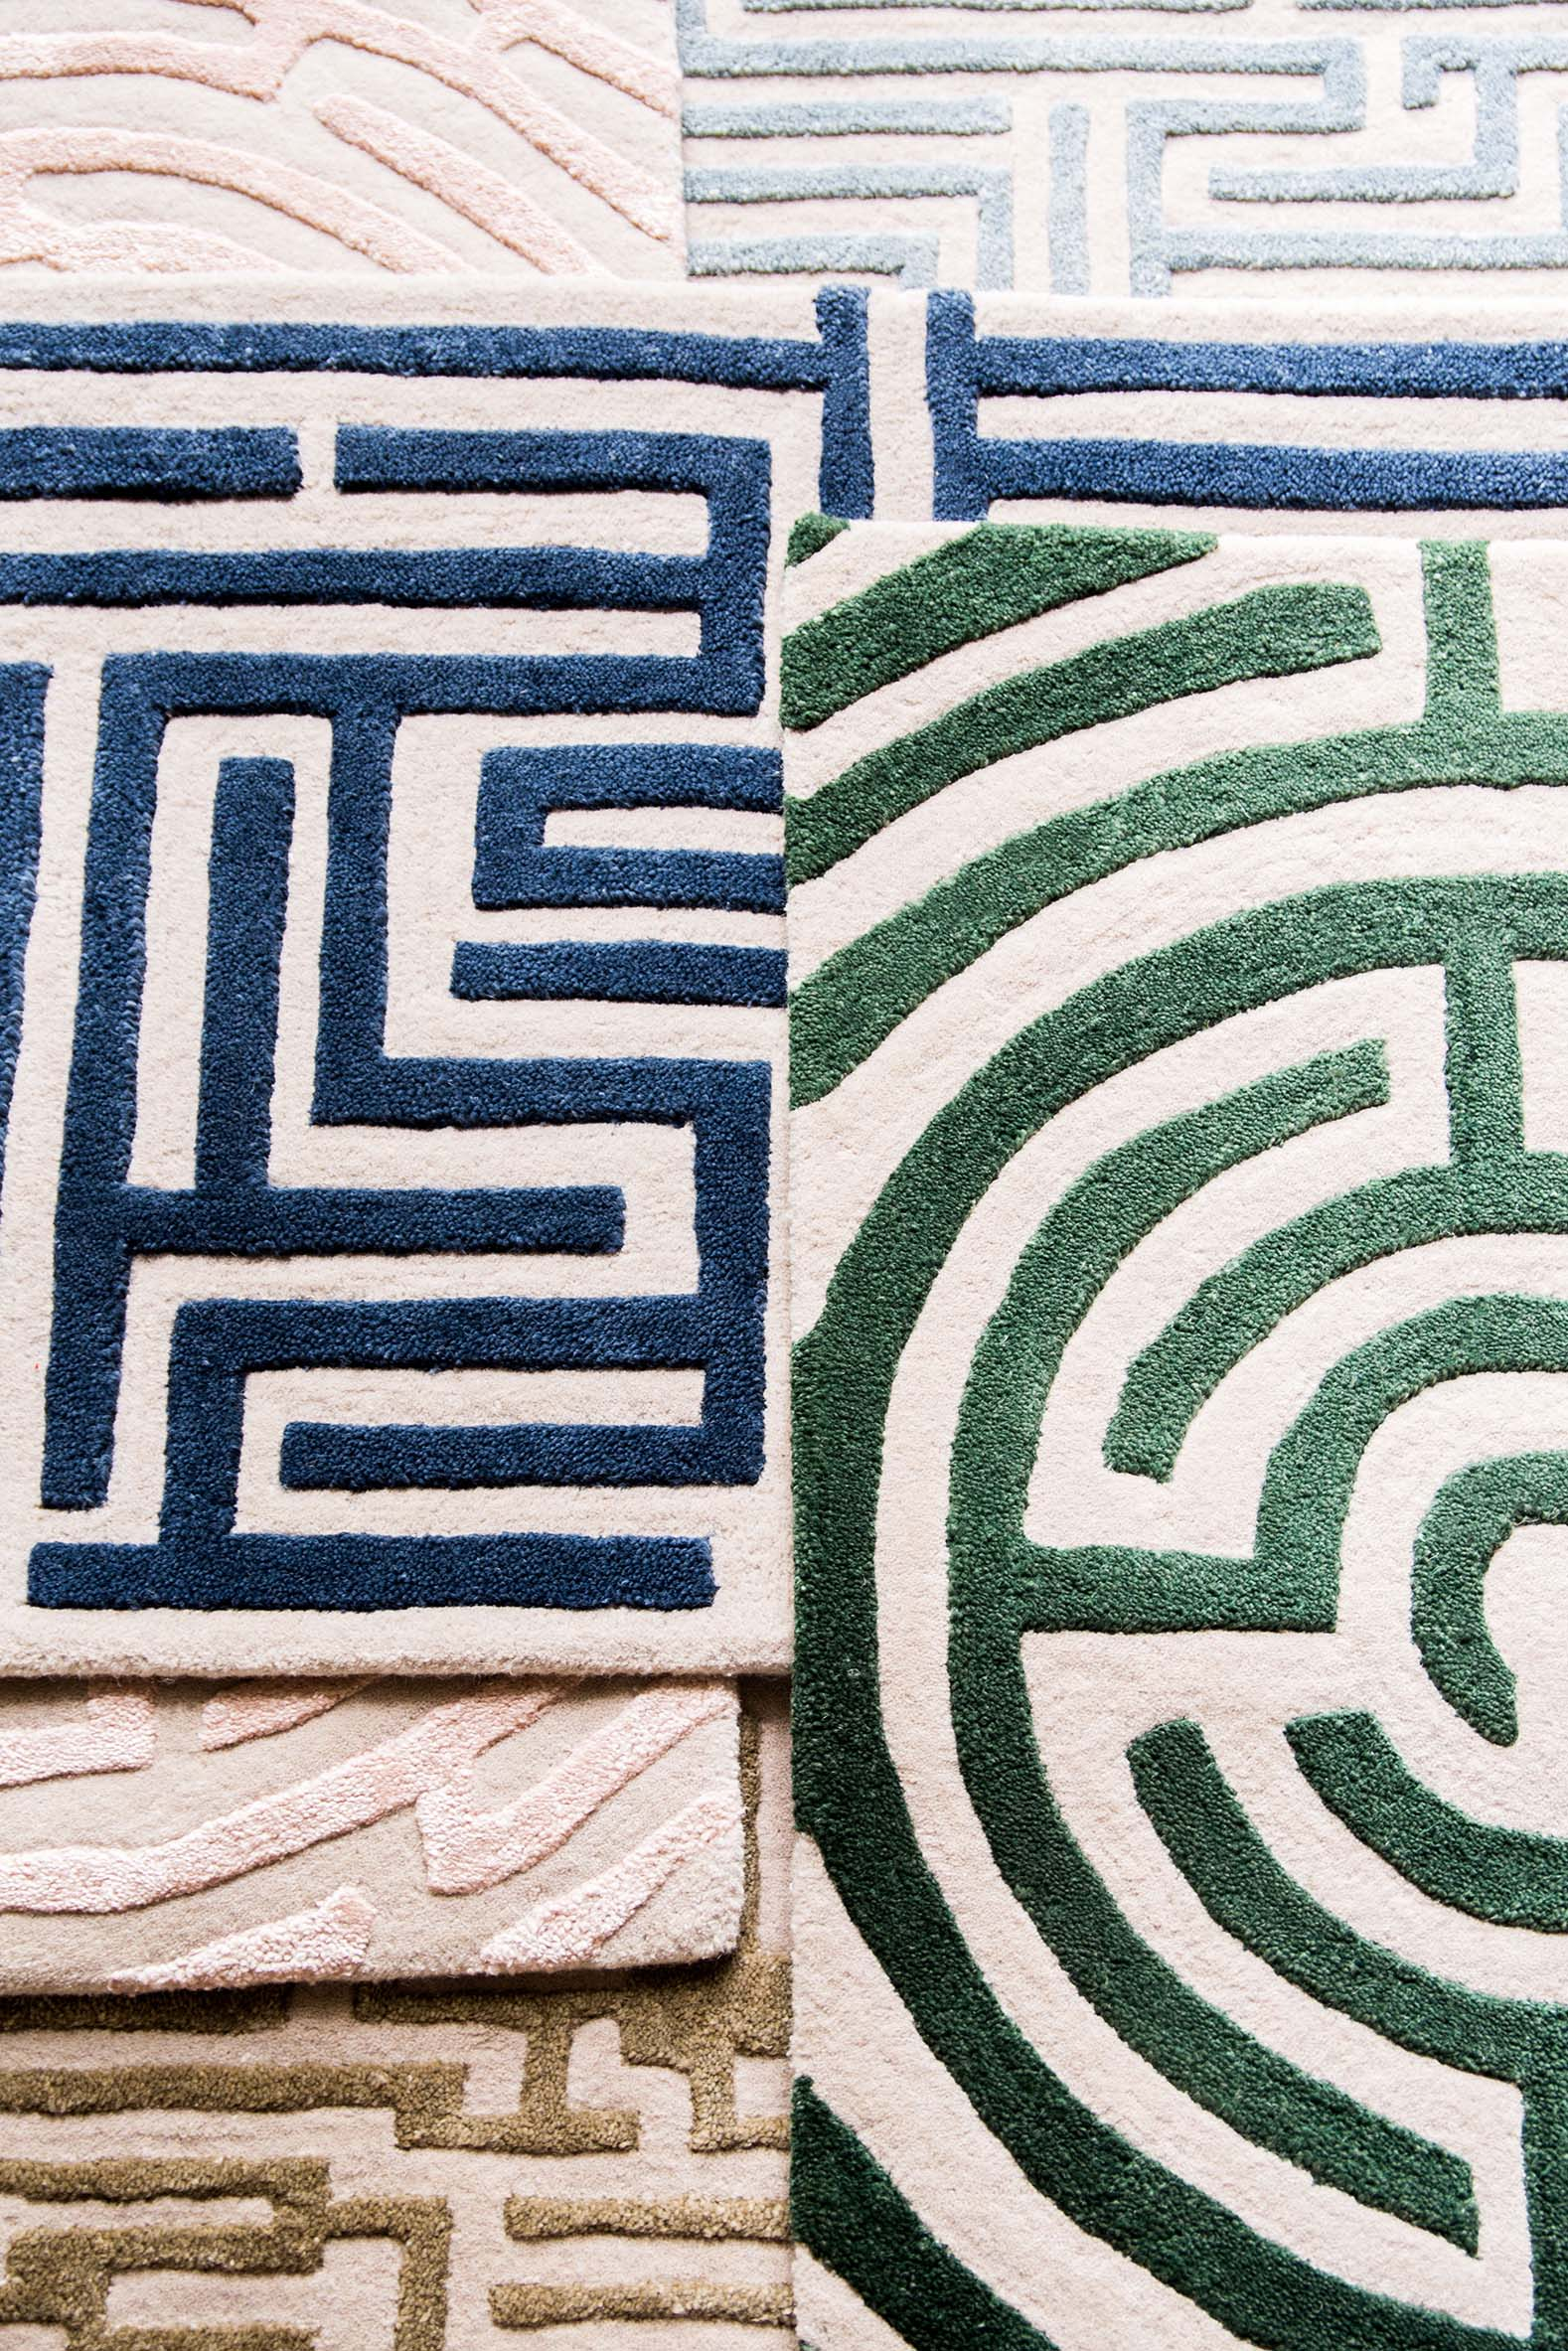 Luxury maze rug designs inspired by hedge garden mazes from above, from Kevin Francis Design